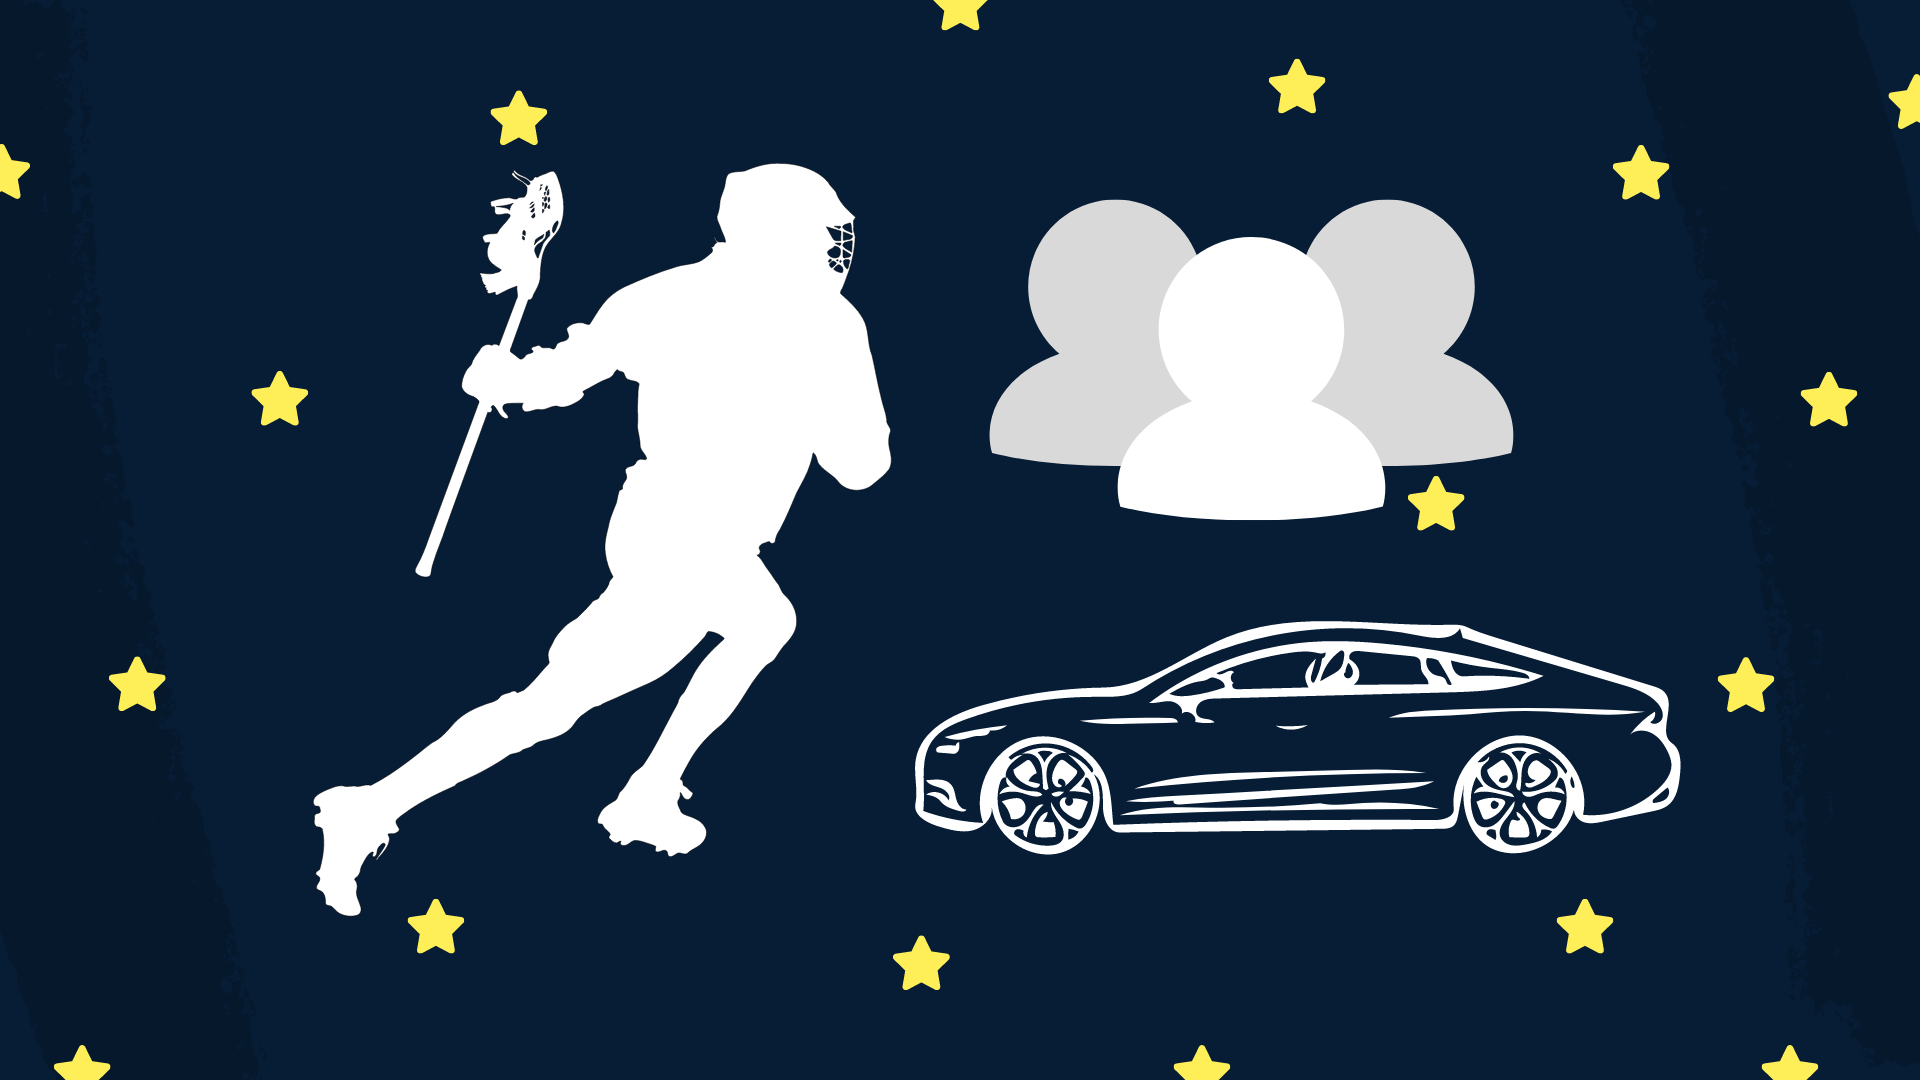 Drawings of lacrosse, a car, and cut out members